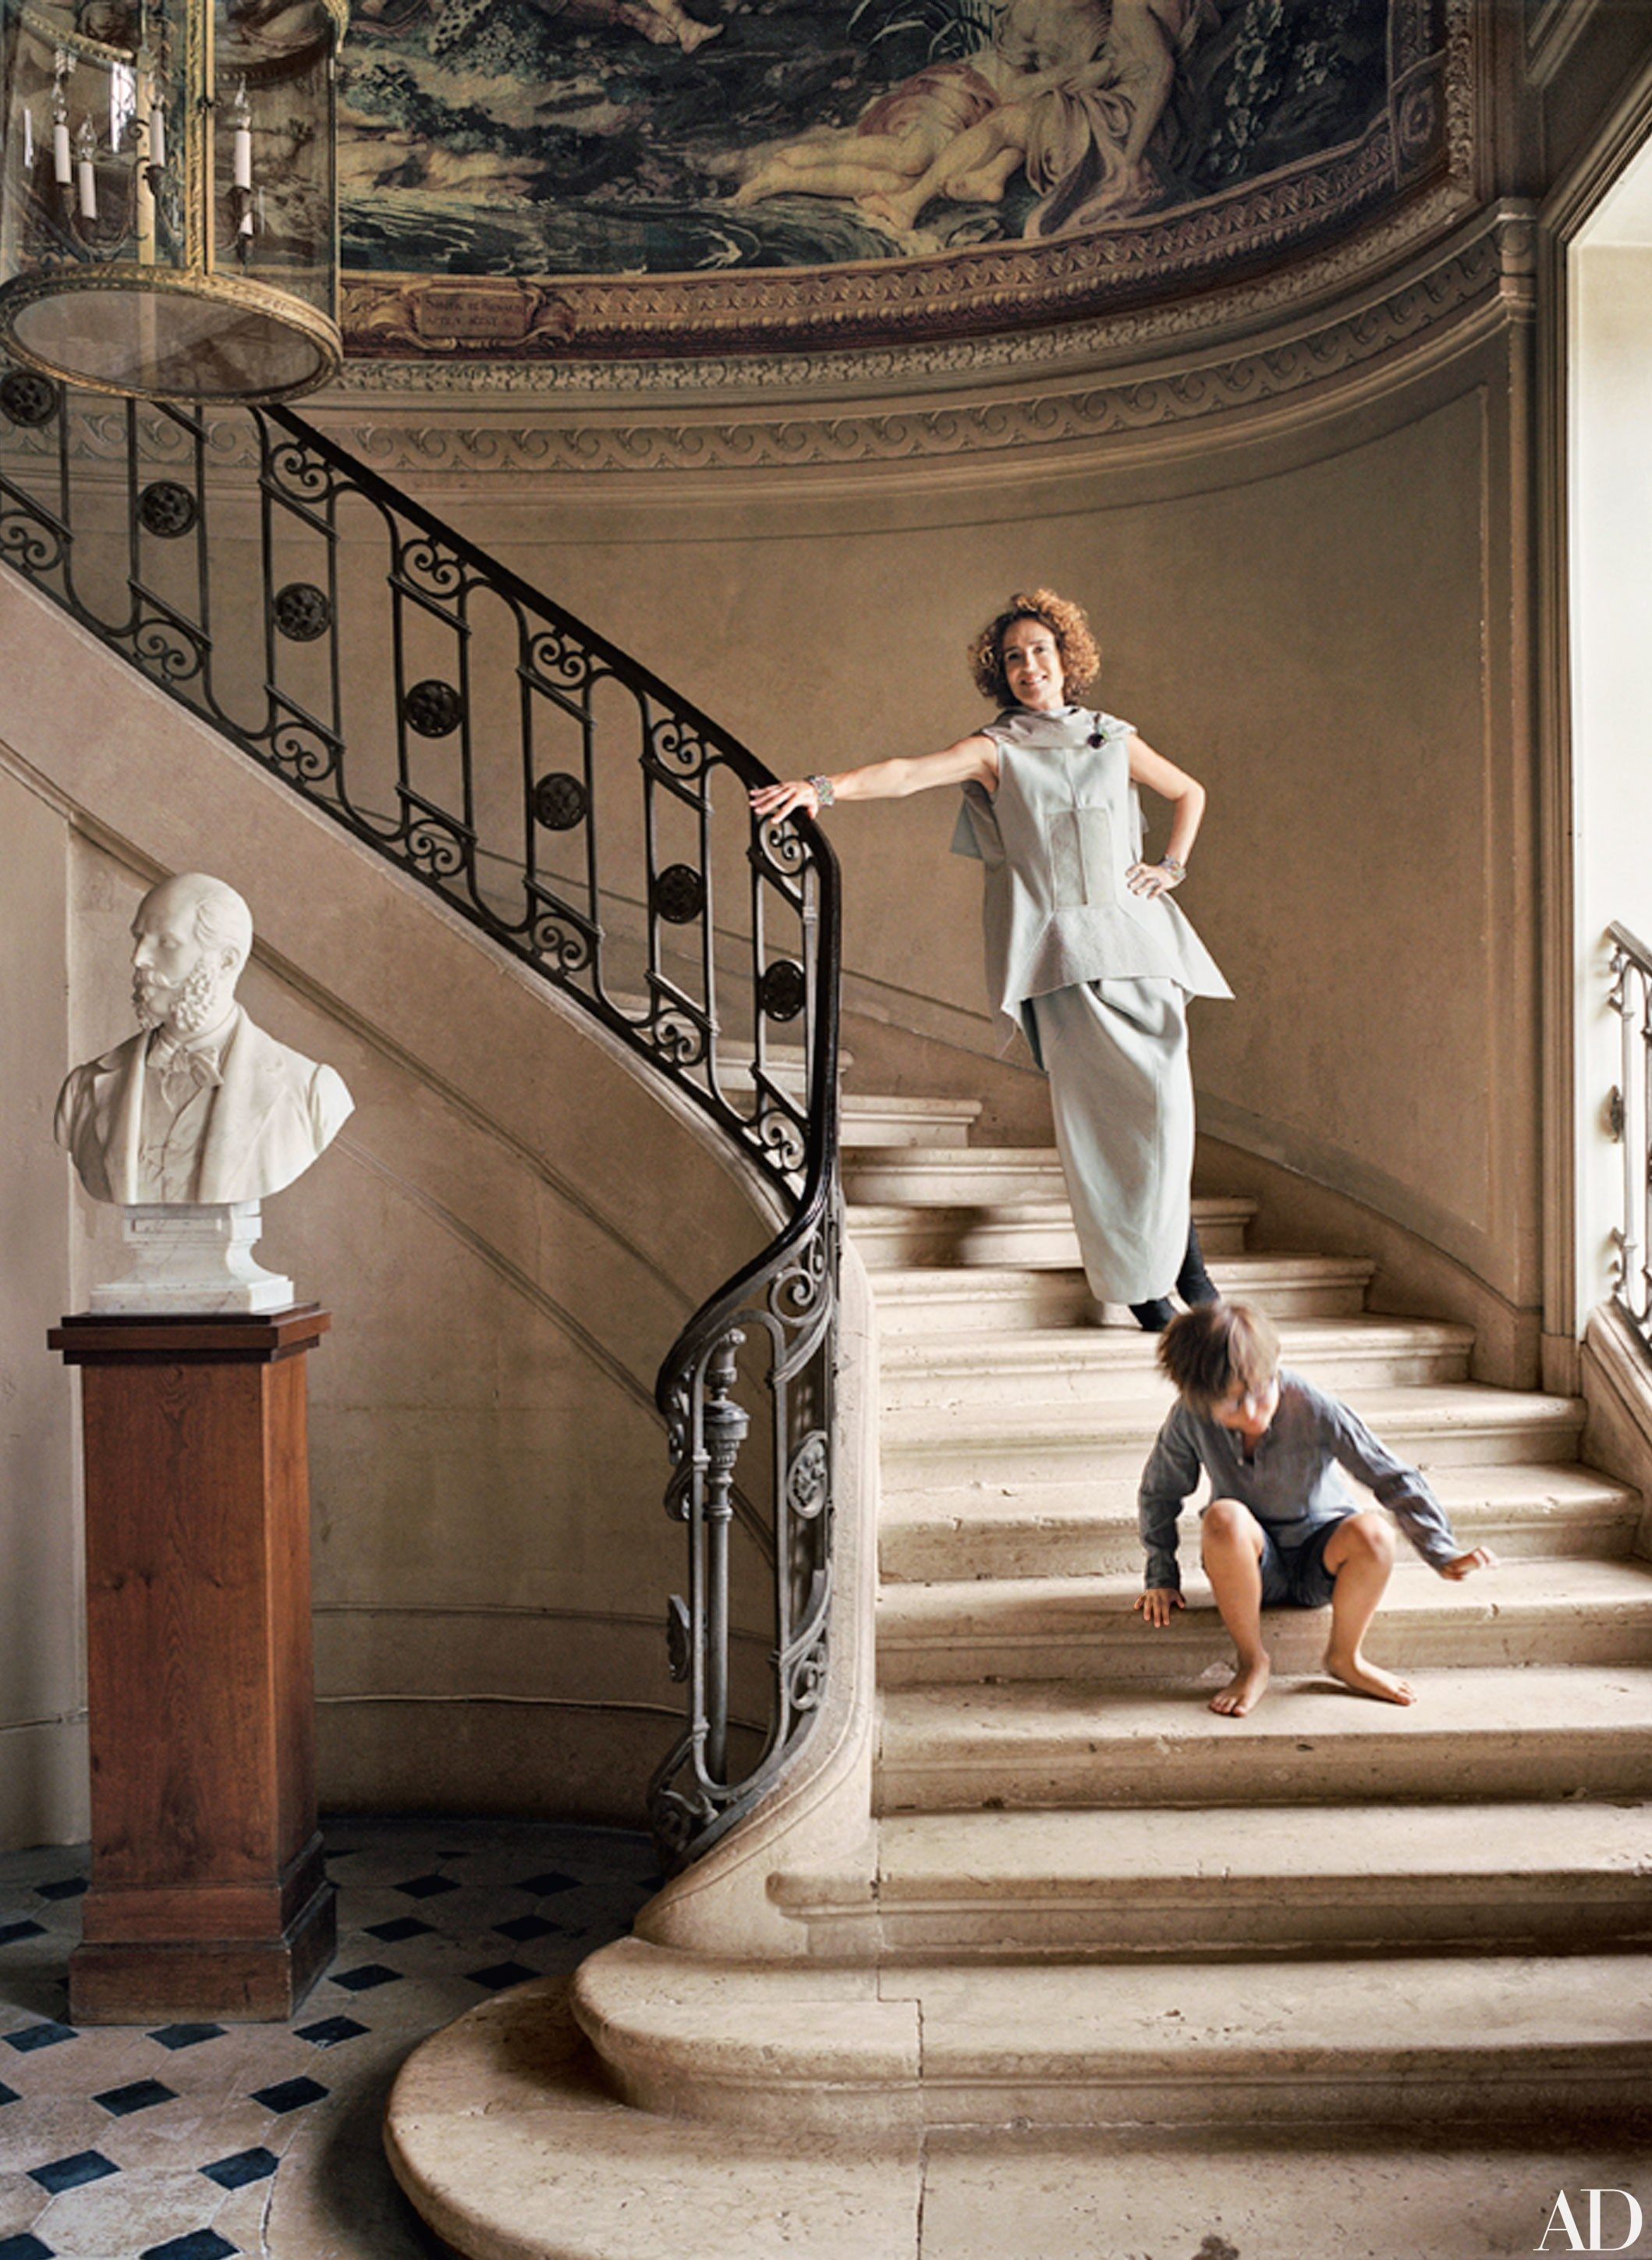 Adam architecture groundbreaking country house in hampshire - Staircase Railings